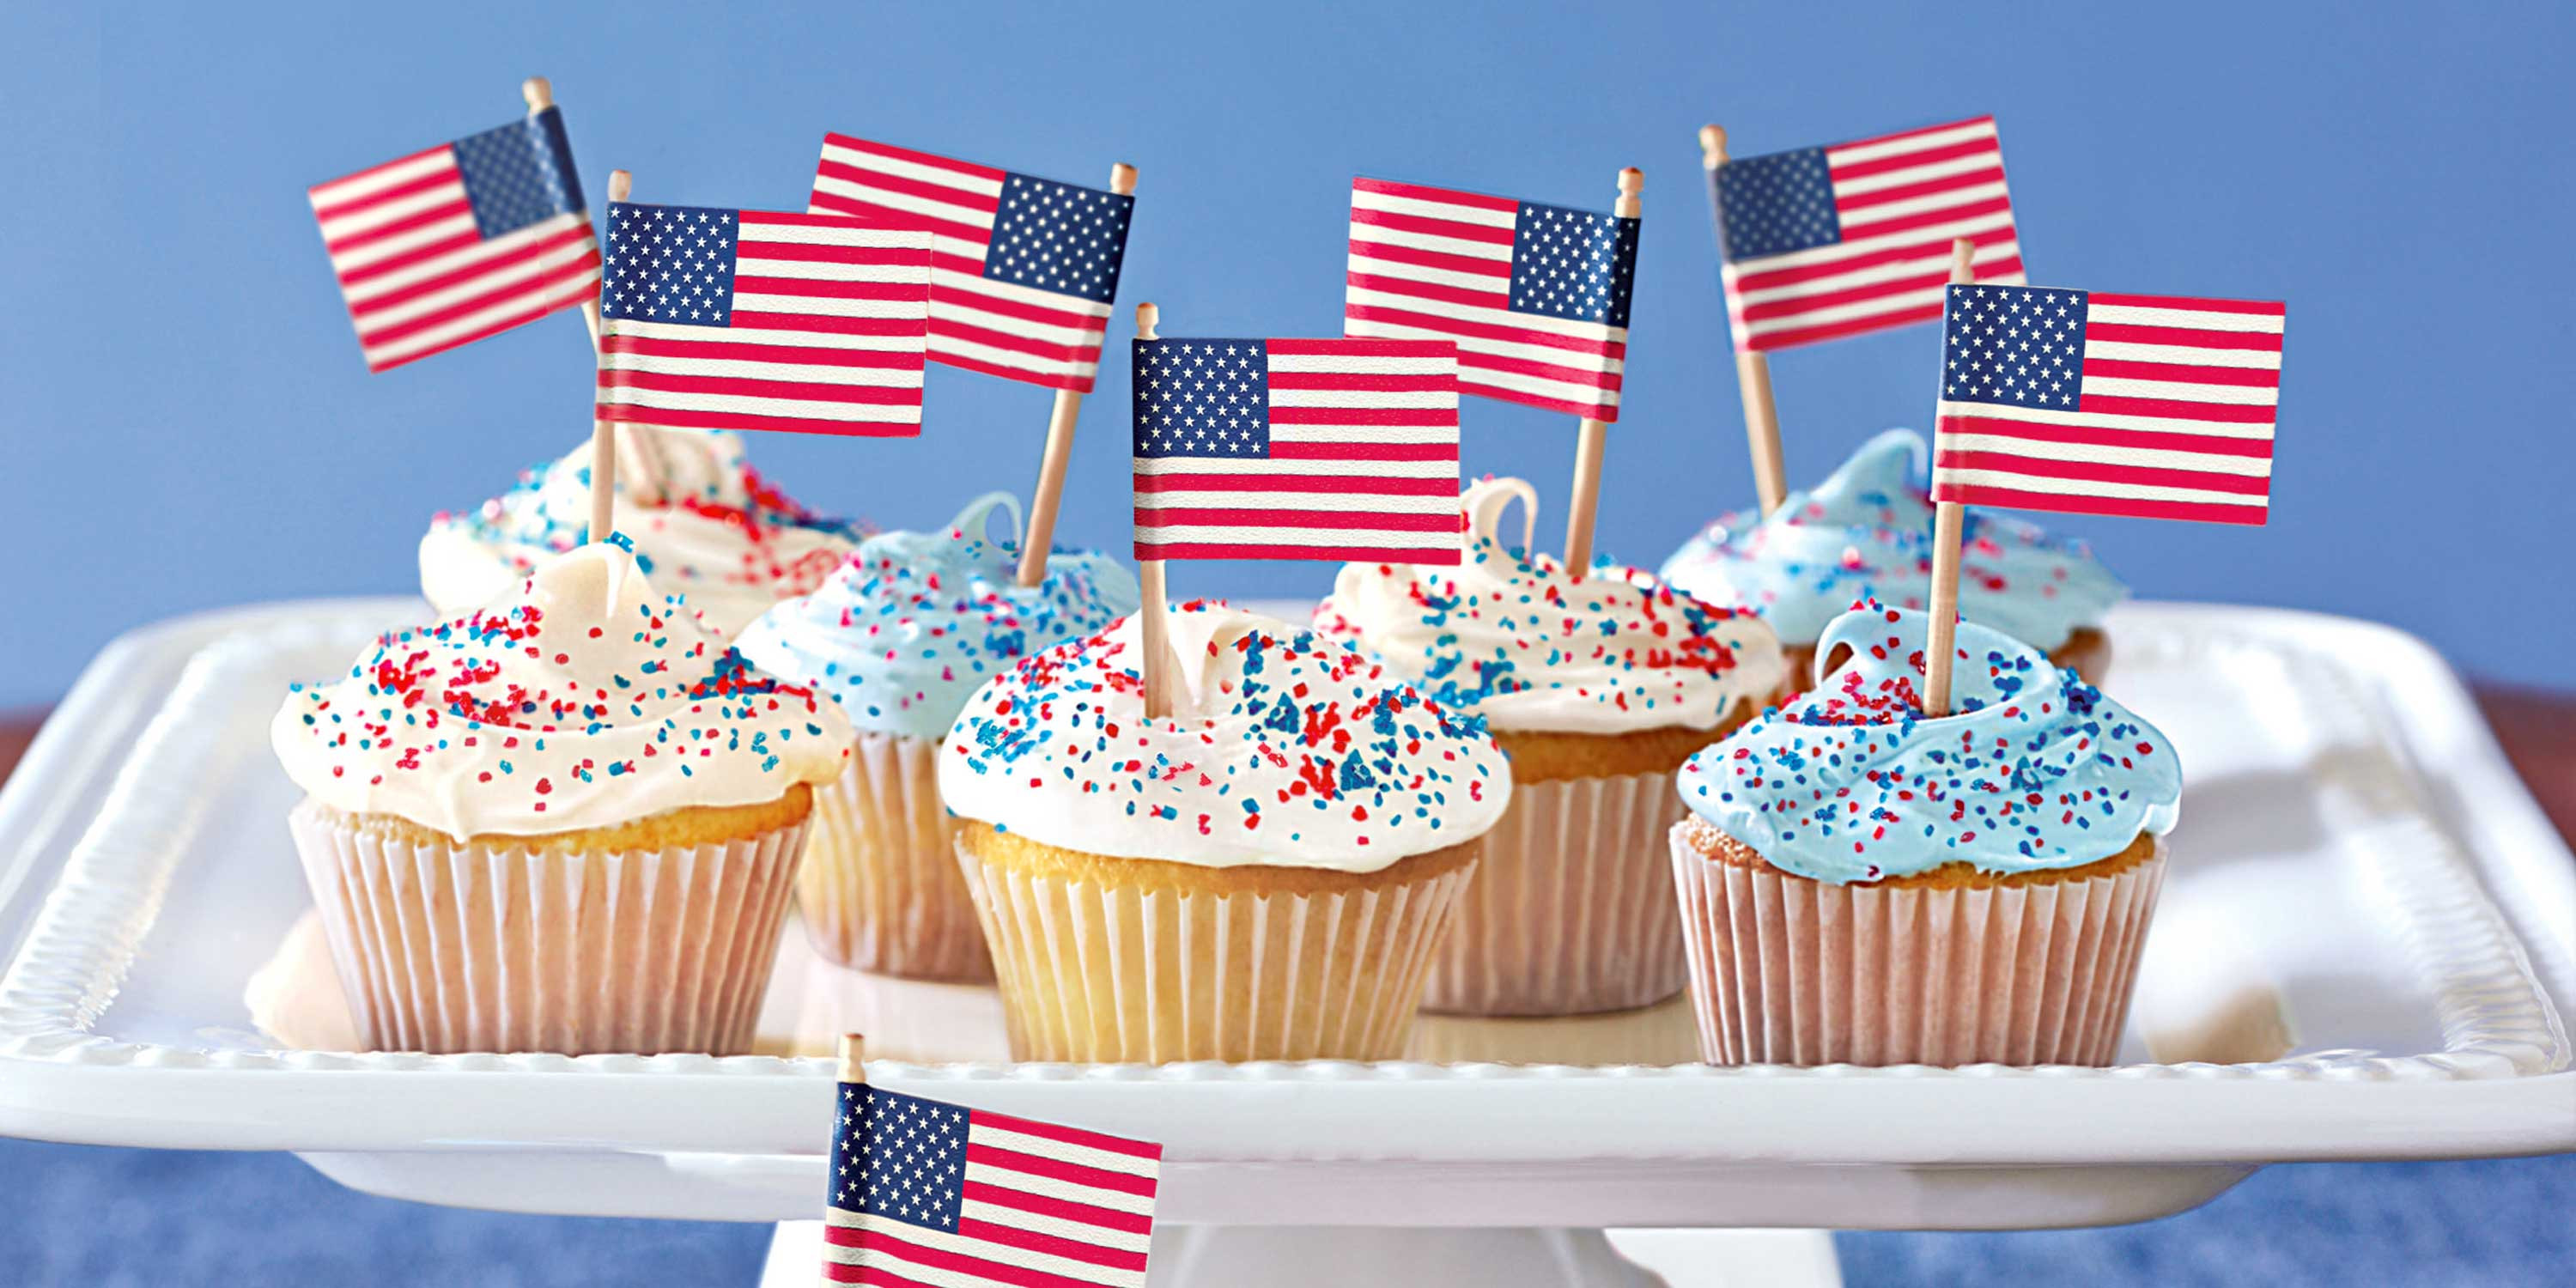 4Th Of July Cupcakes  17 Easy 4th of July Cupcake & Cakes — Recipes for Fourth